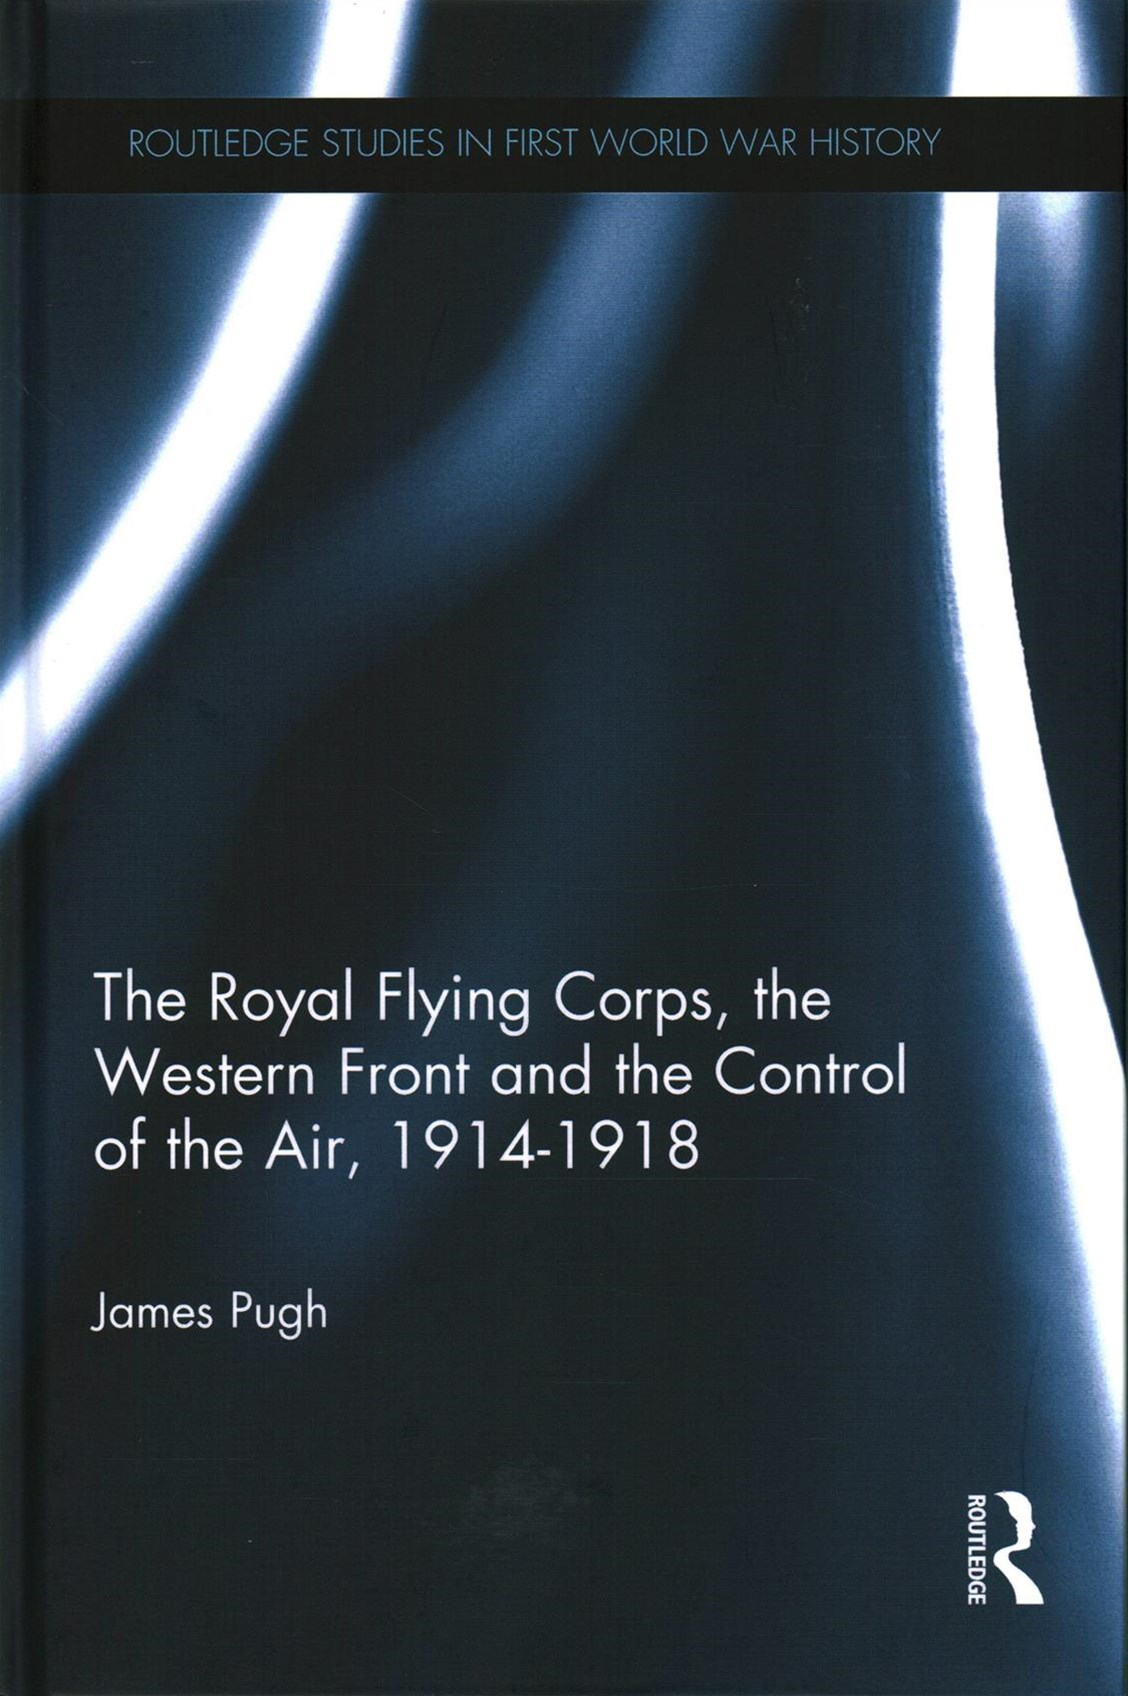 Royal Flying Corps, the Western Front and the Control of the Air, 1914-1918